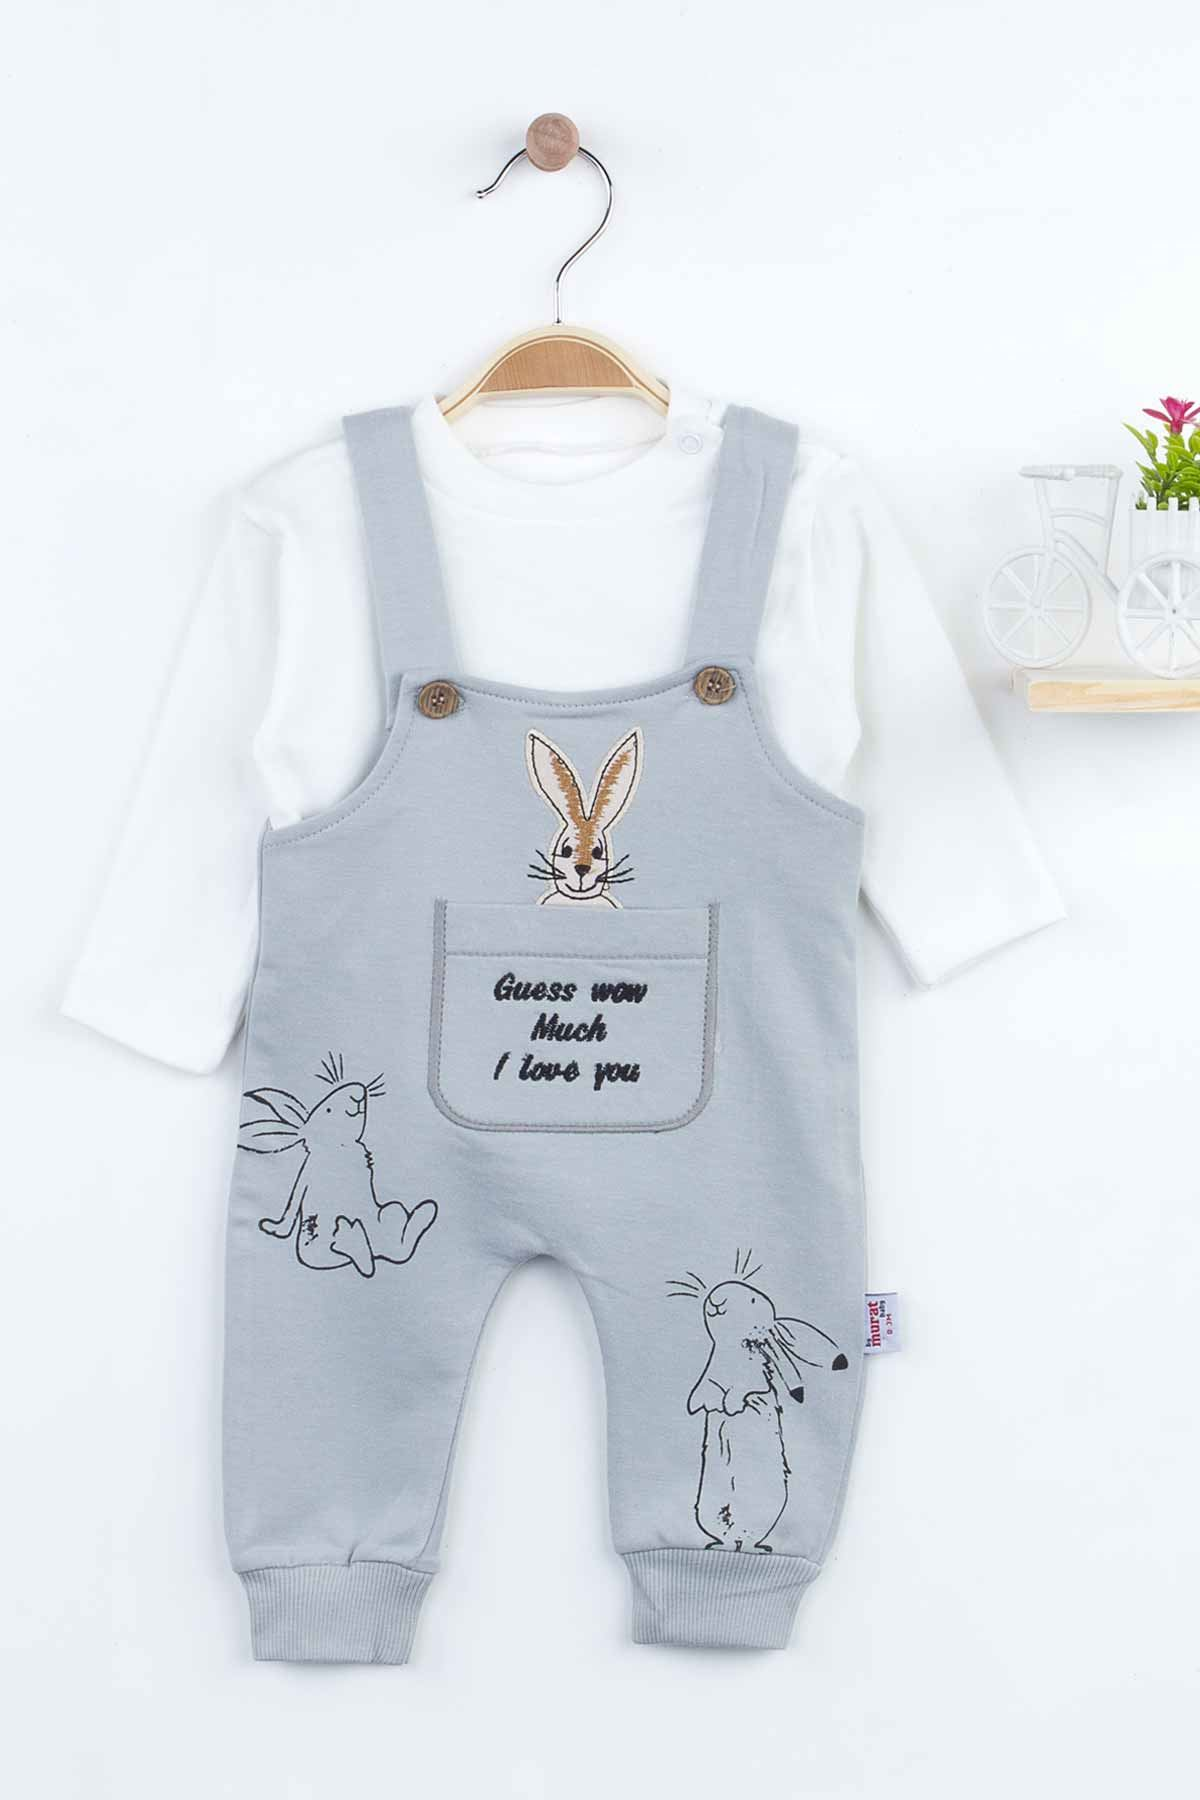 Rabbit Baby Girl Rompers Babies Clothes Set Outfit Cotton Comfortable Underwear 2021 New Season Girls Salopet Rabbit Models